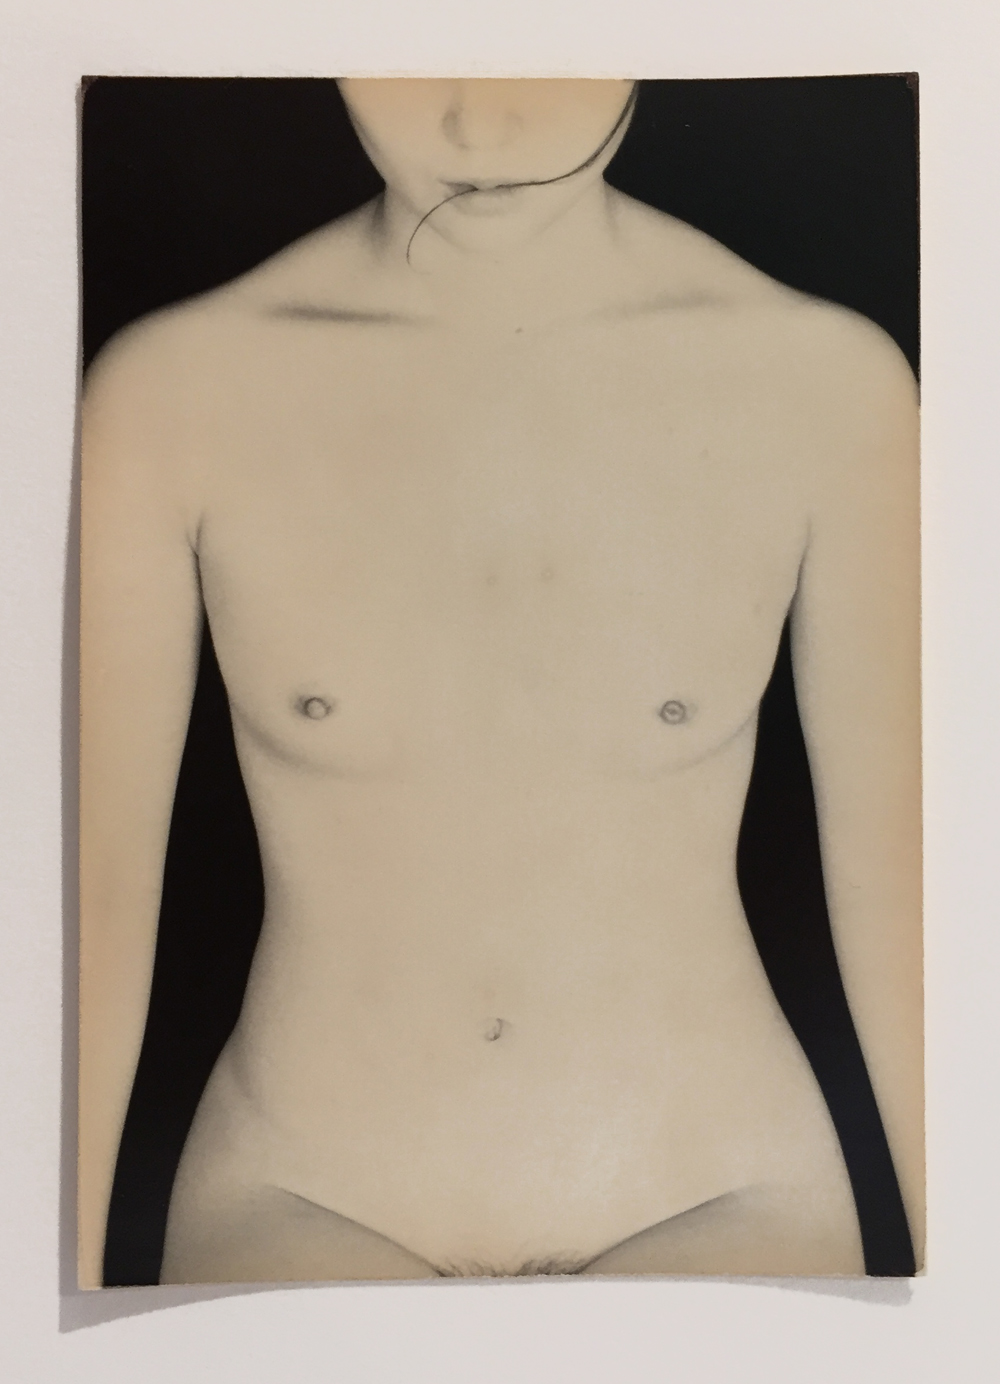 Masao Yamamoto, Untitled Nude, toned gelatin silver print, 4.75 x 3.25 inches, price on request